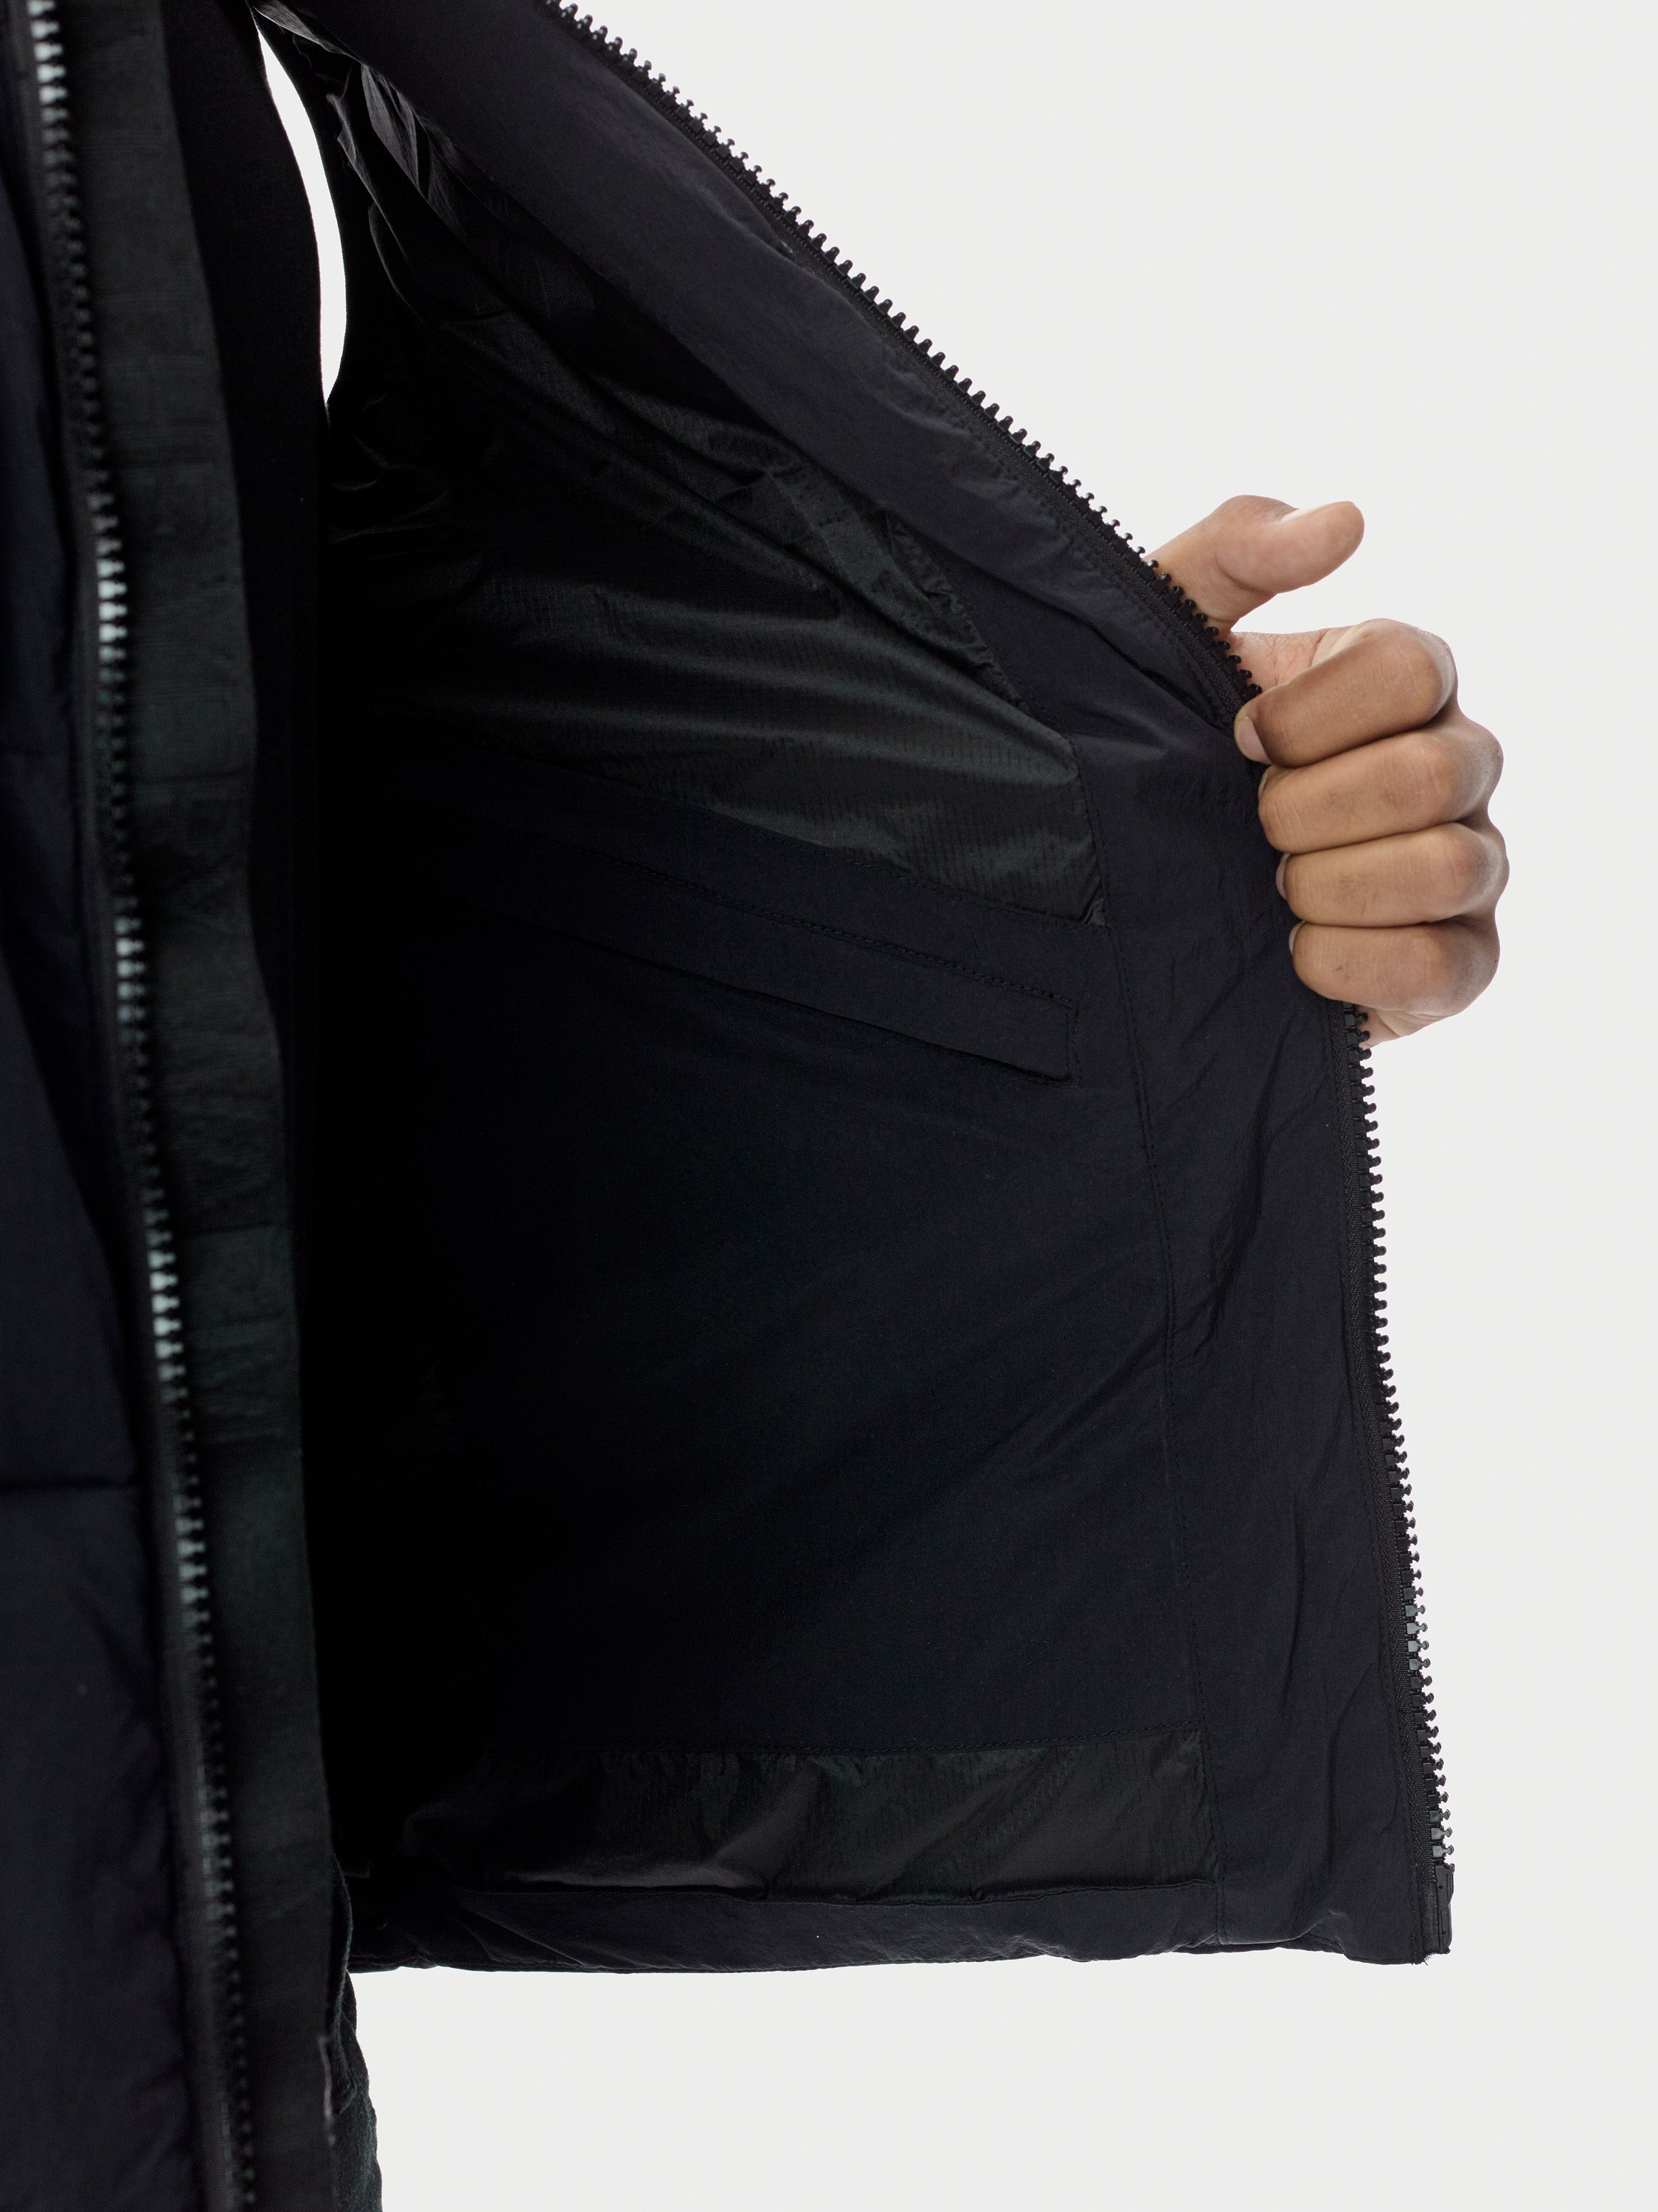 Filled Bubble Puffer Vest - Black Puffer Vest - Black